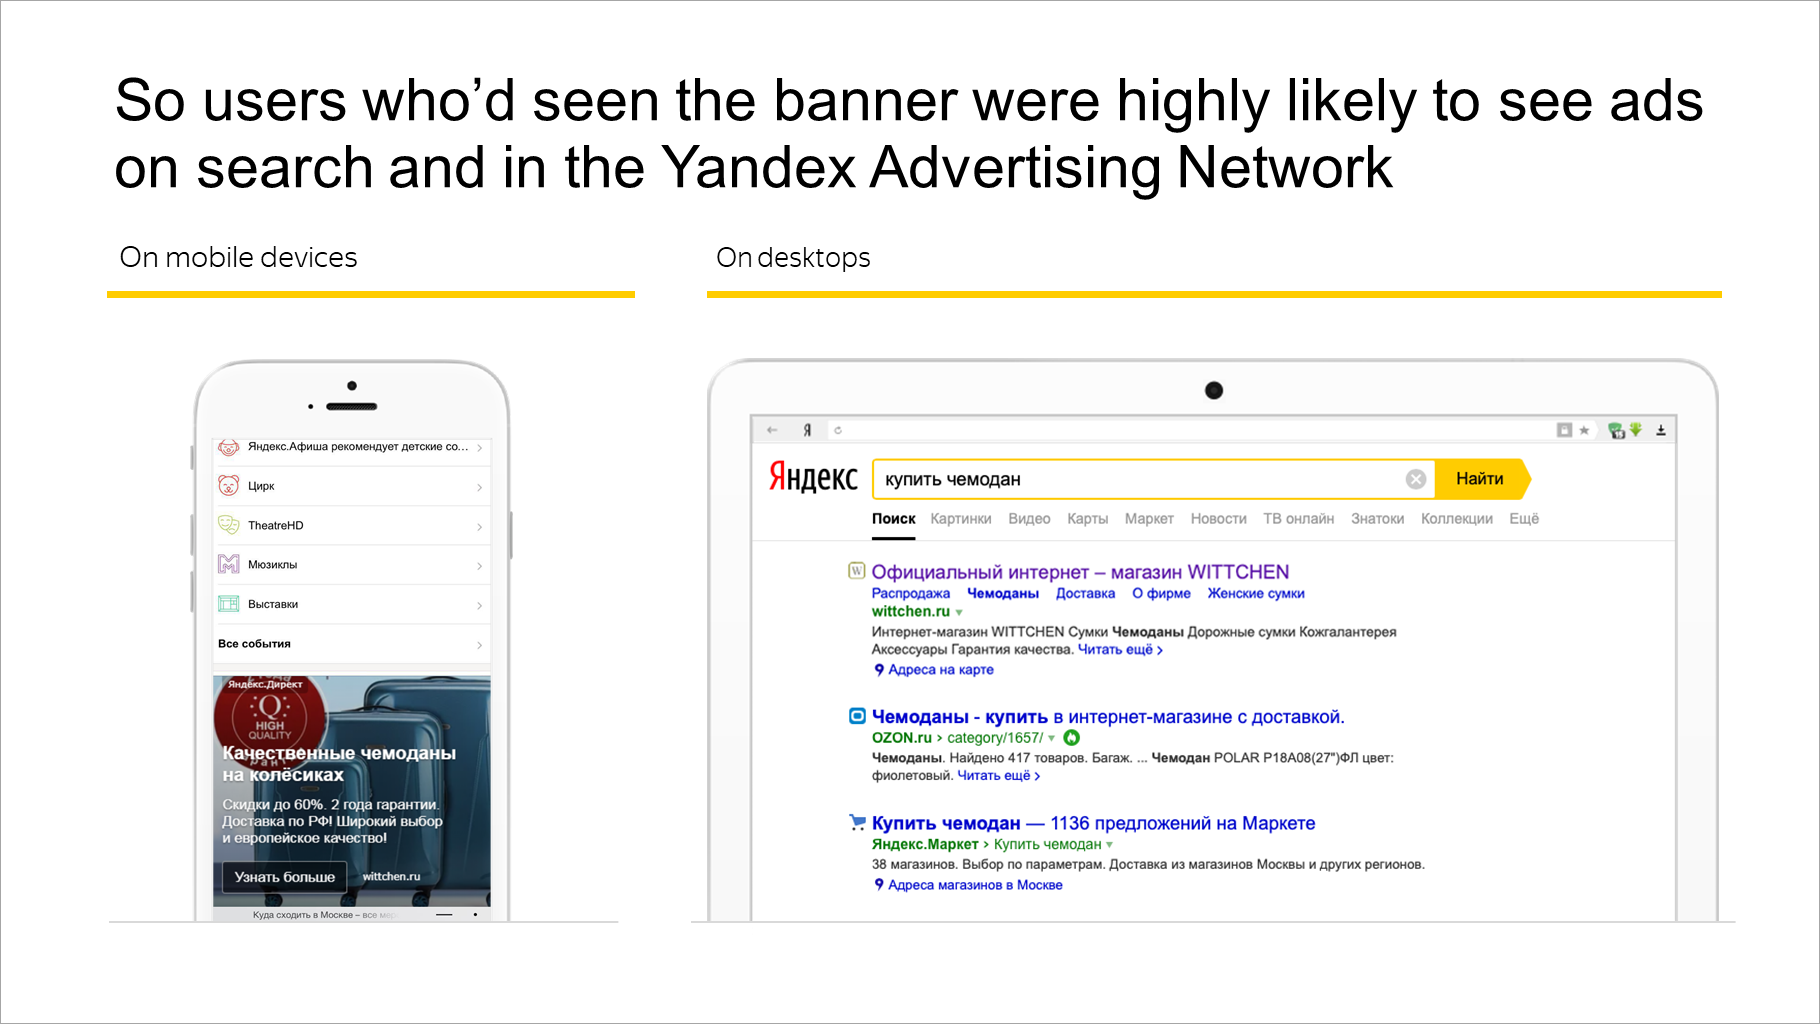 So users who'd seen the banner were highly likely to see ads on search and in the Yandex Advertising Network